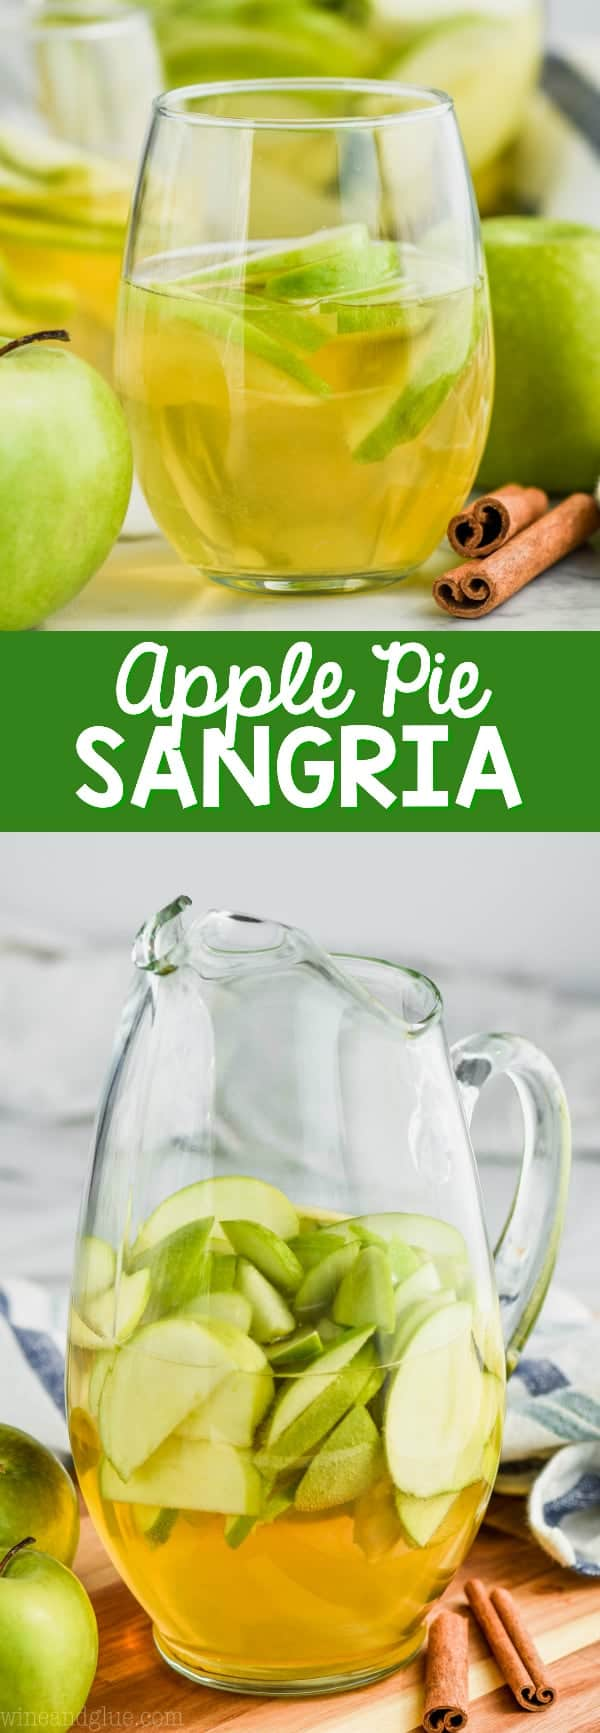 pitcher of apple pie sangria recipe with cut up green apples